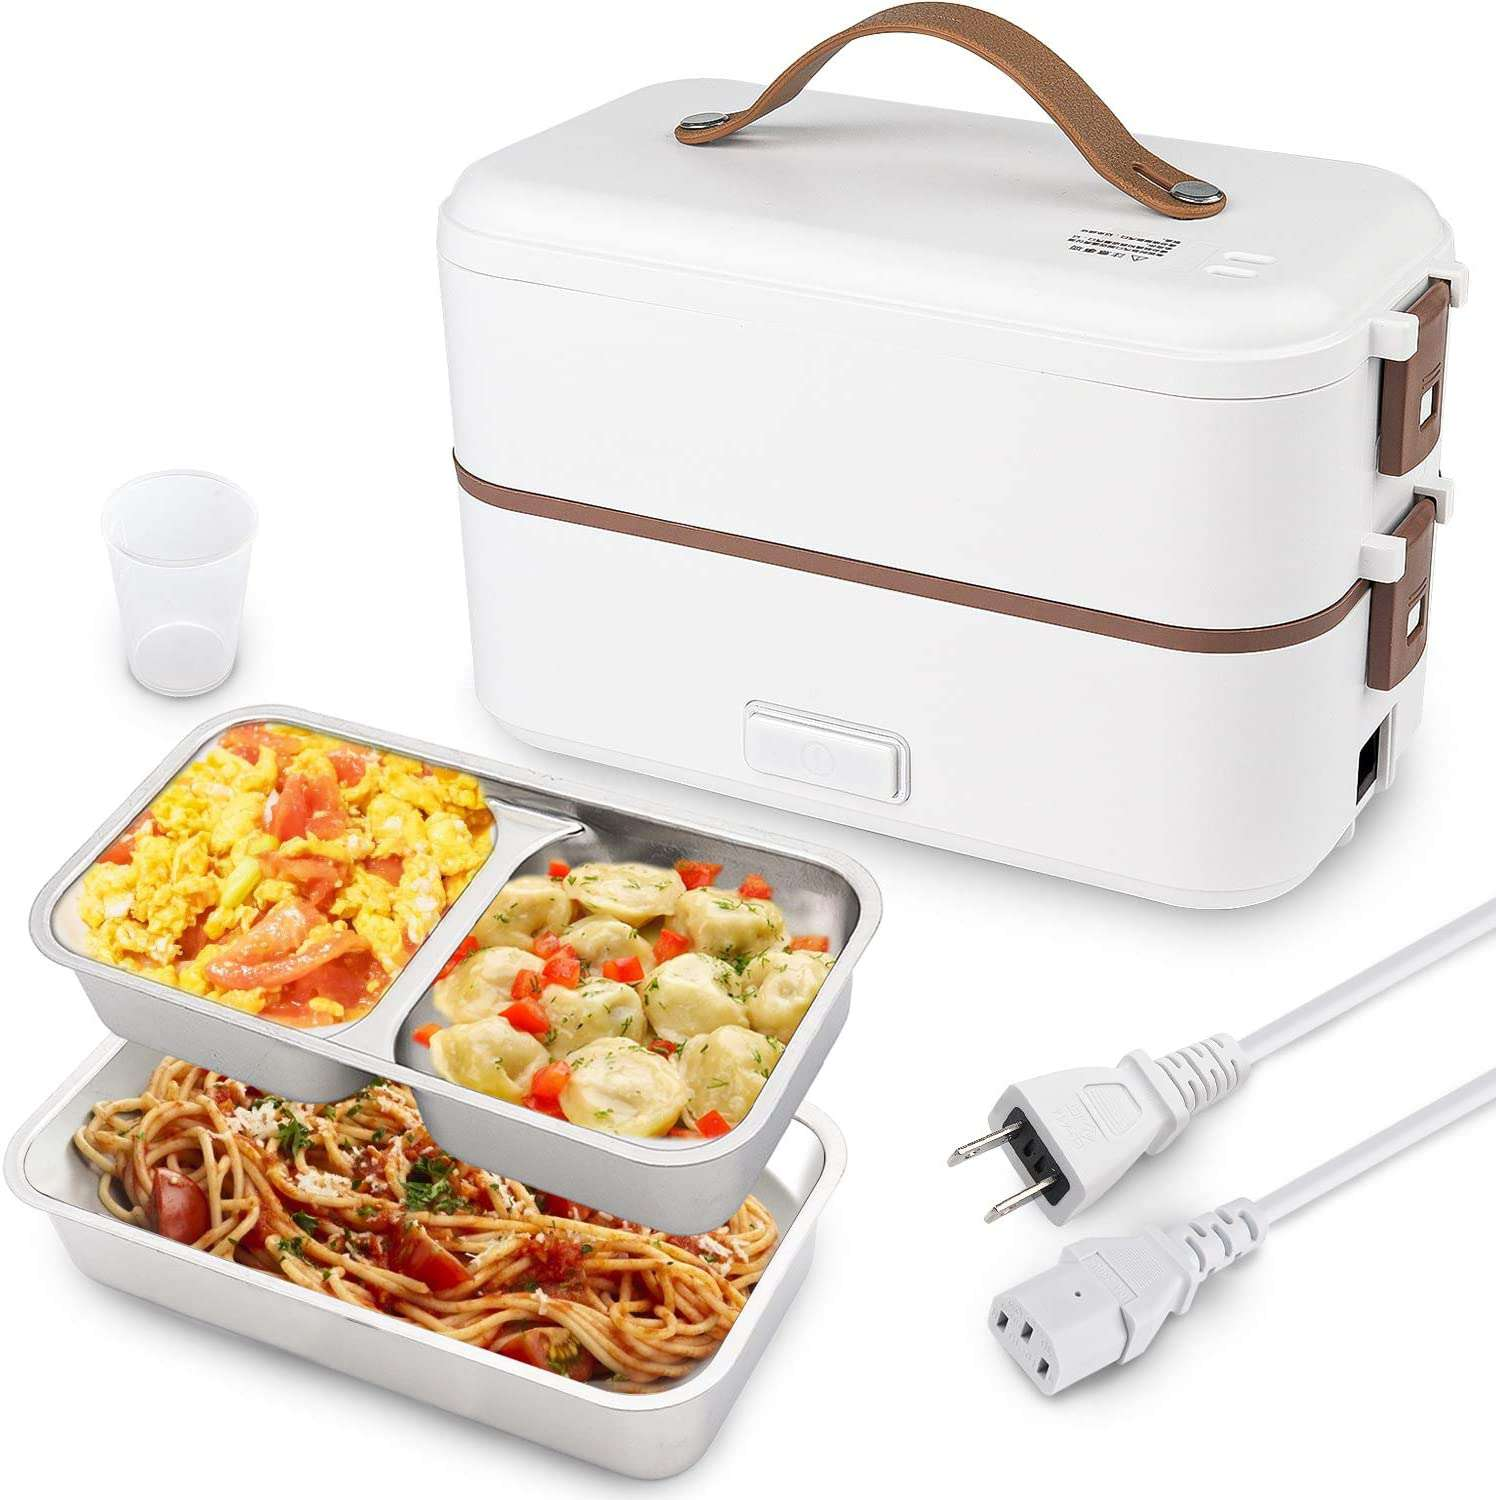 CTSZOOM Self-Cooking Electric Lunch Box